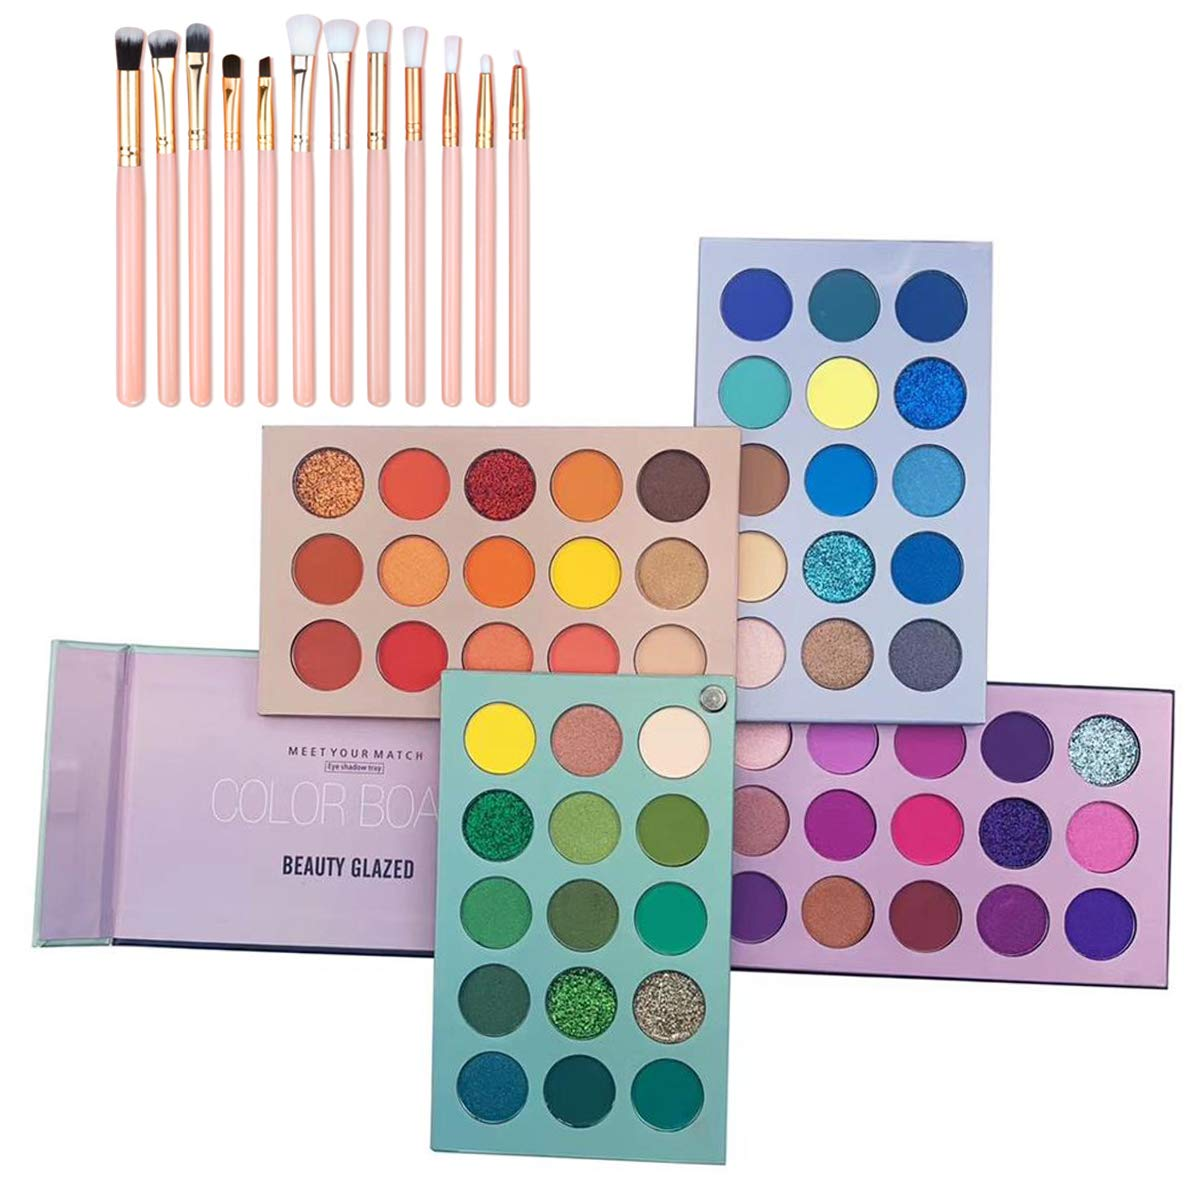 Bestnice 60 Colors Eyeshadow Max 66% OFF Palette 4 1 Board Makeup Free Shipping New Color in